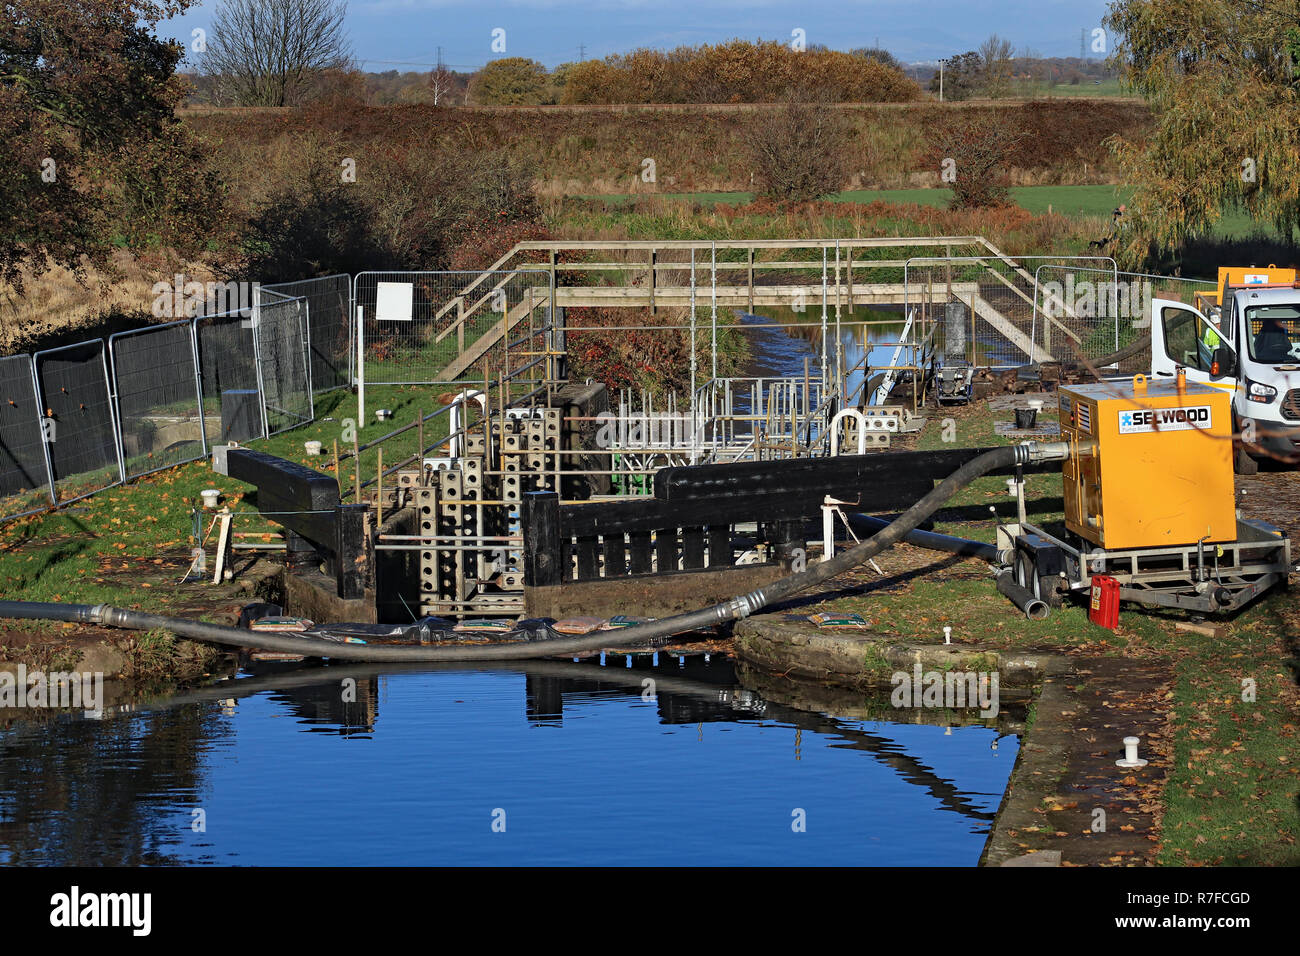 Gate replacement works at lock 3 on the Rufford. On the eastern side of Burscough along the Leeds and Liverpool canal the Rufford arm branches off. - Stock Image